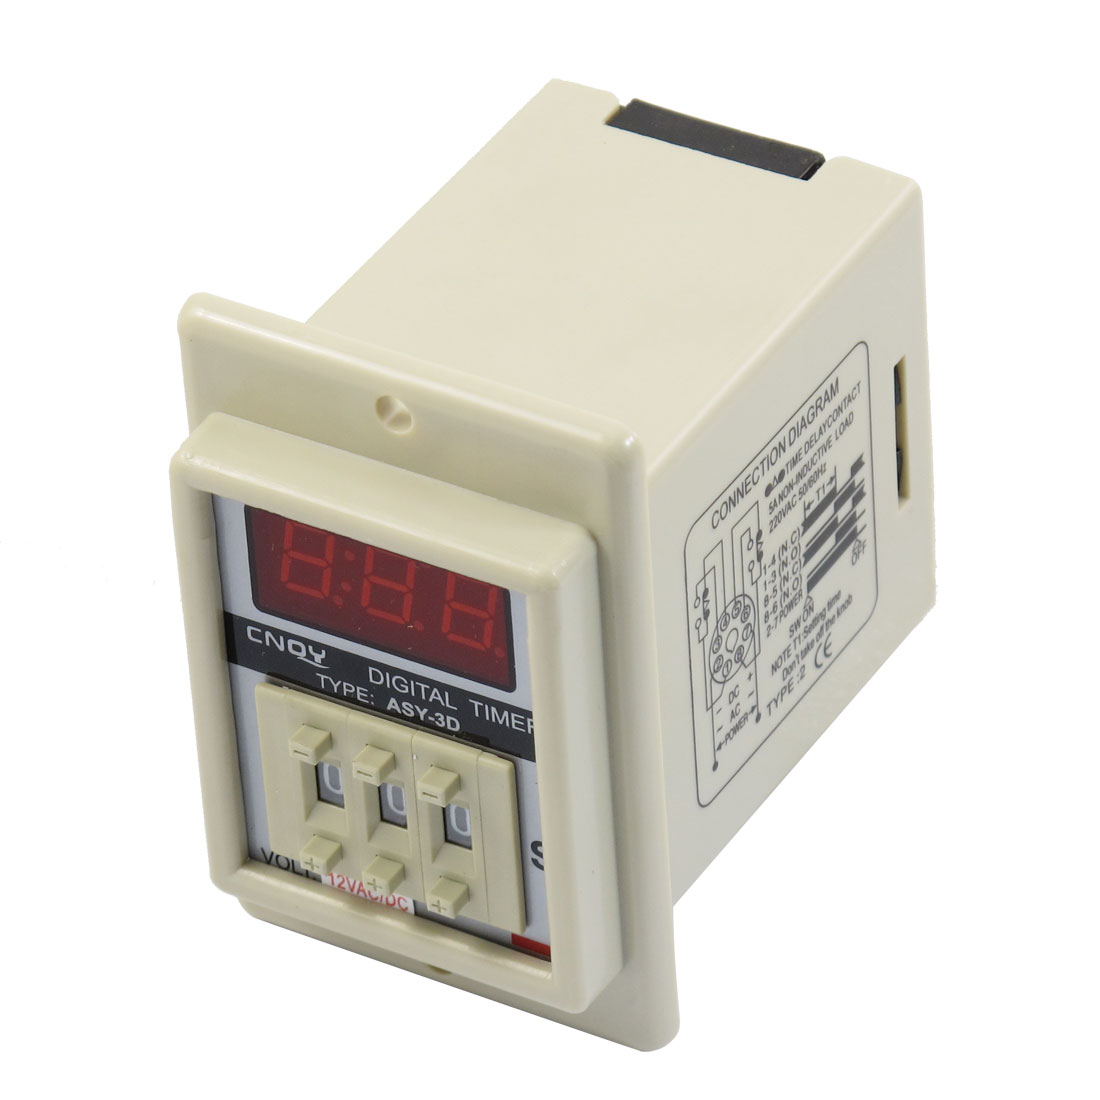 AC/DC 12V 8 Pin 1-999 Second Digital Timer Time Delay Relay Beige ASY-3D